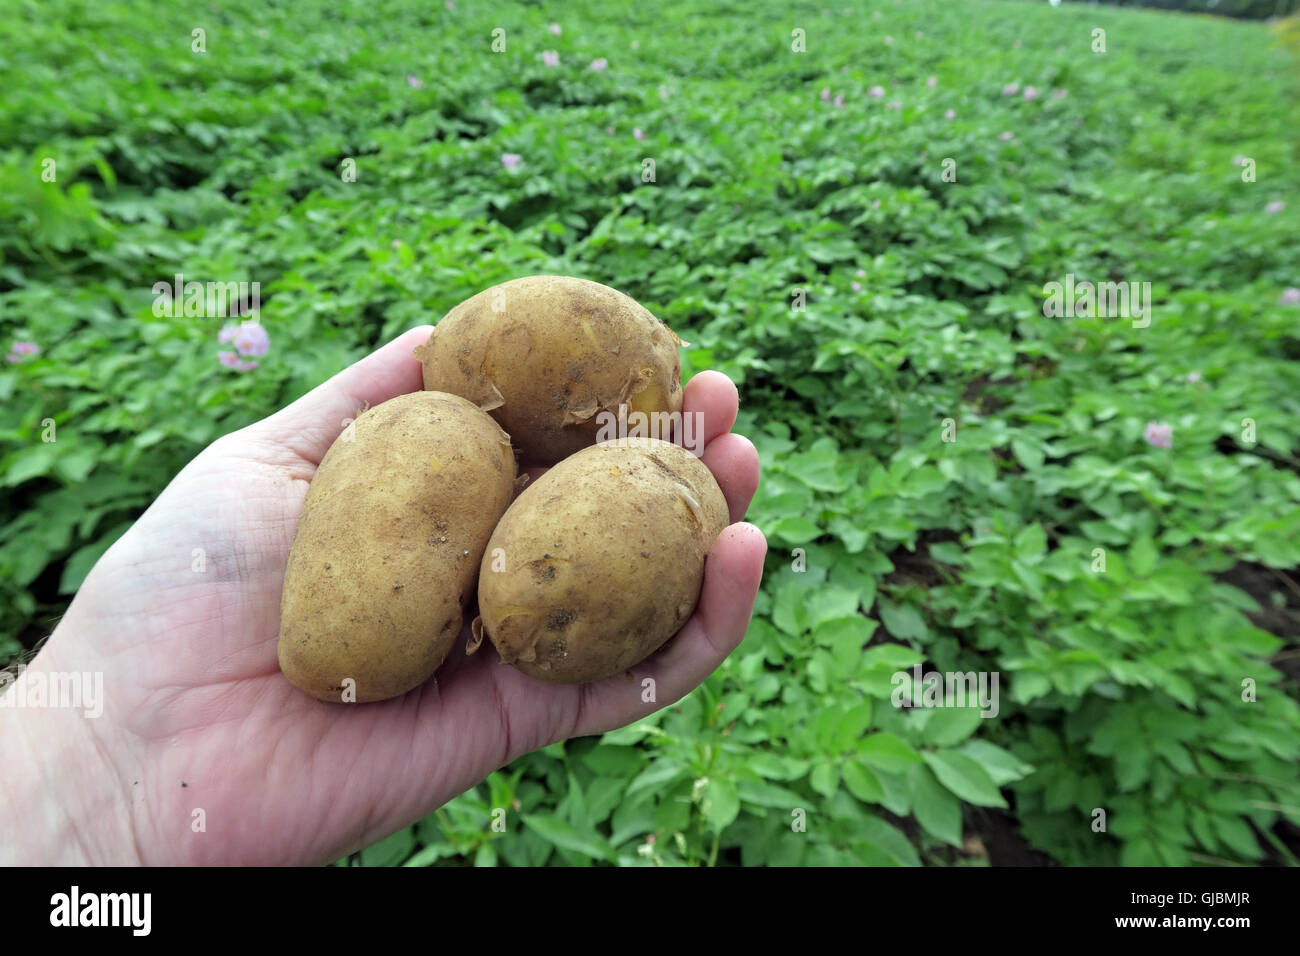 GoTonySmith,@HotpixUK,Tony,Smith,UK,GB,Great,Britain,United,Kingdom,English,British,England,problem,with,problem with,issue with,Buy Pictures of,Buy Images Of,Images of,Stock Images,Tony Smith,United Kingdom,Great Britain,British Isles,potatoes,potato,field of potatoes,Cheshire,held,holding,Solanum tuberosum,tuber,spuds,spud,where chips come from,staple crop,carbs,staple food,carbohydrate